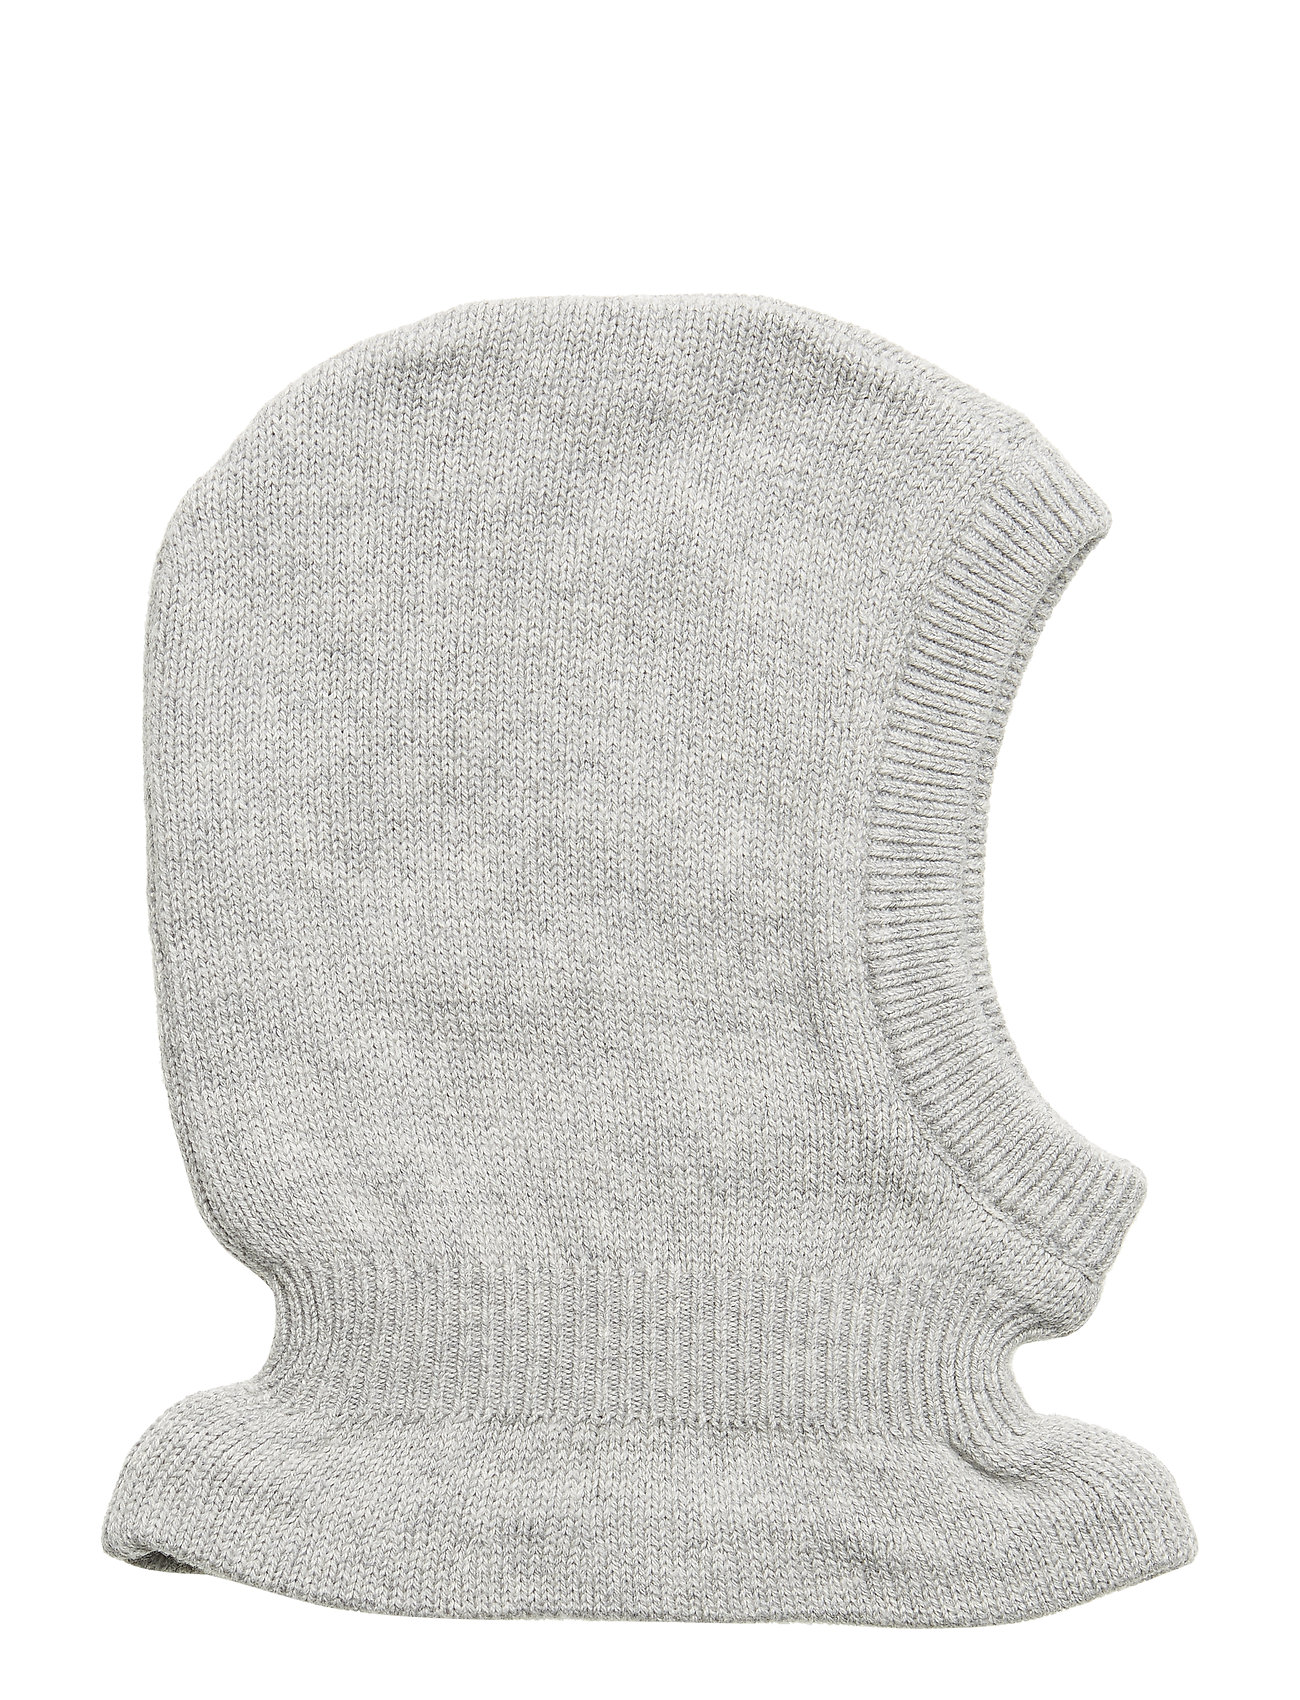 Image of Knitted Balaclava Hat Grå WHEAT (3072431867)